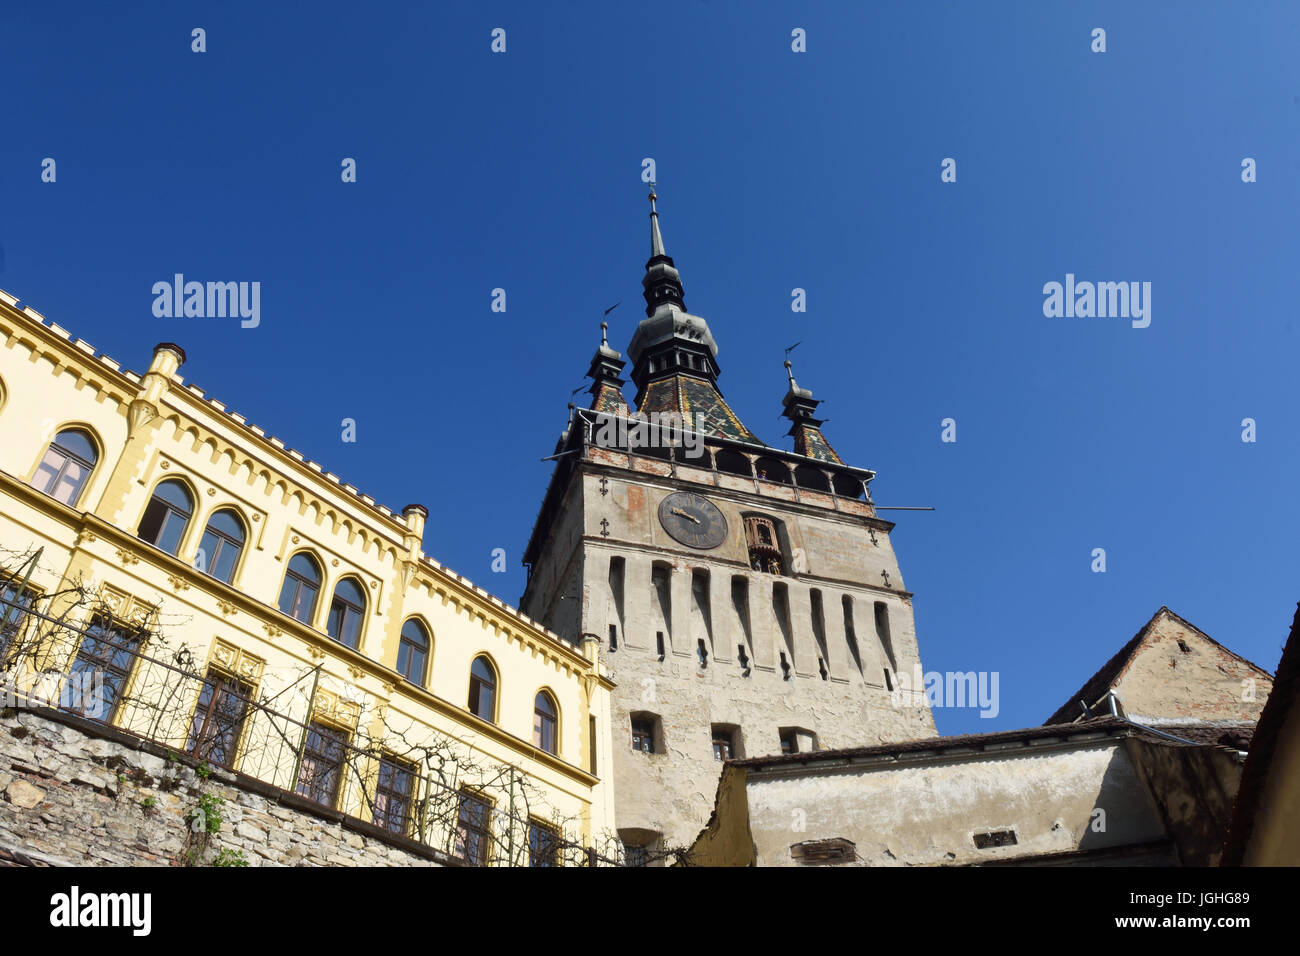 Unesco World Heritage Clock tower in Sighisoara Transylvania Romania Stock Photo